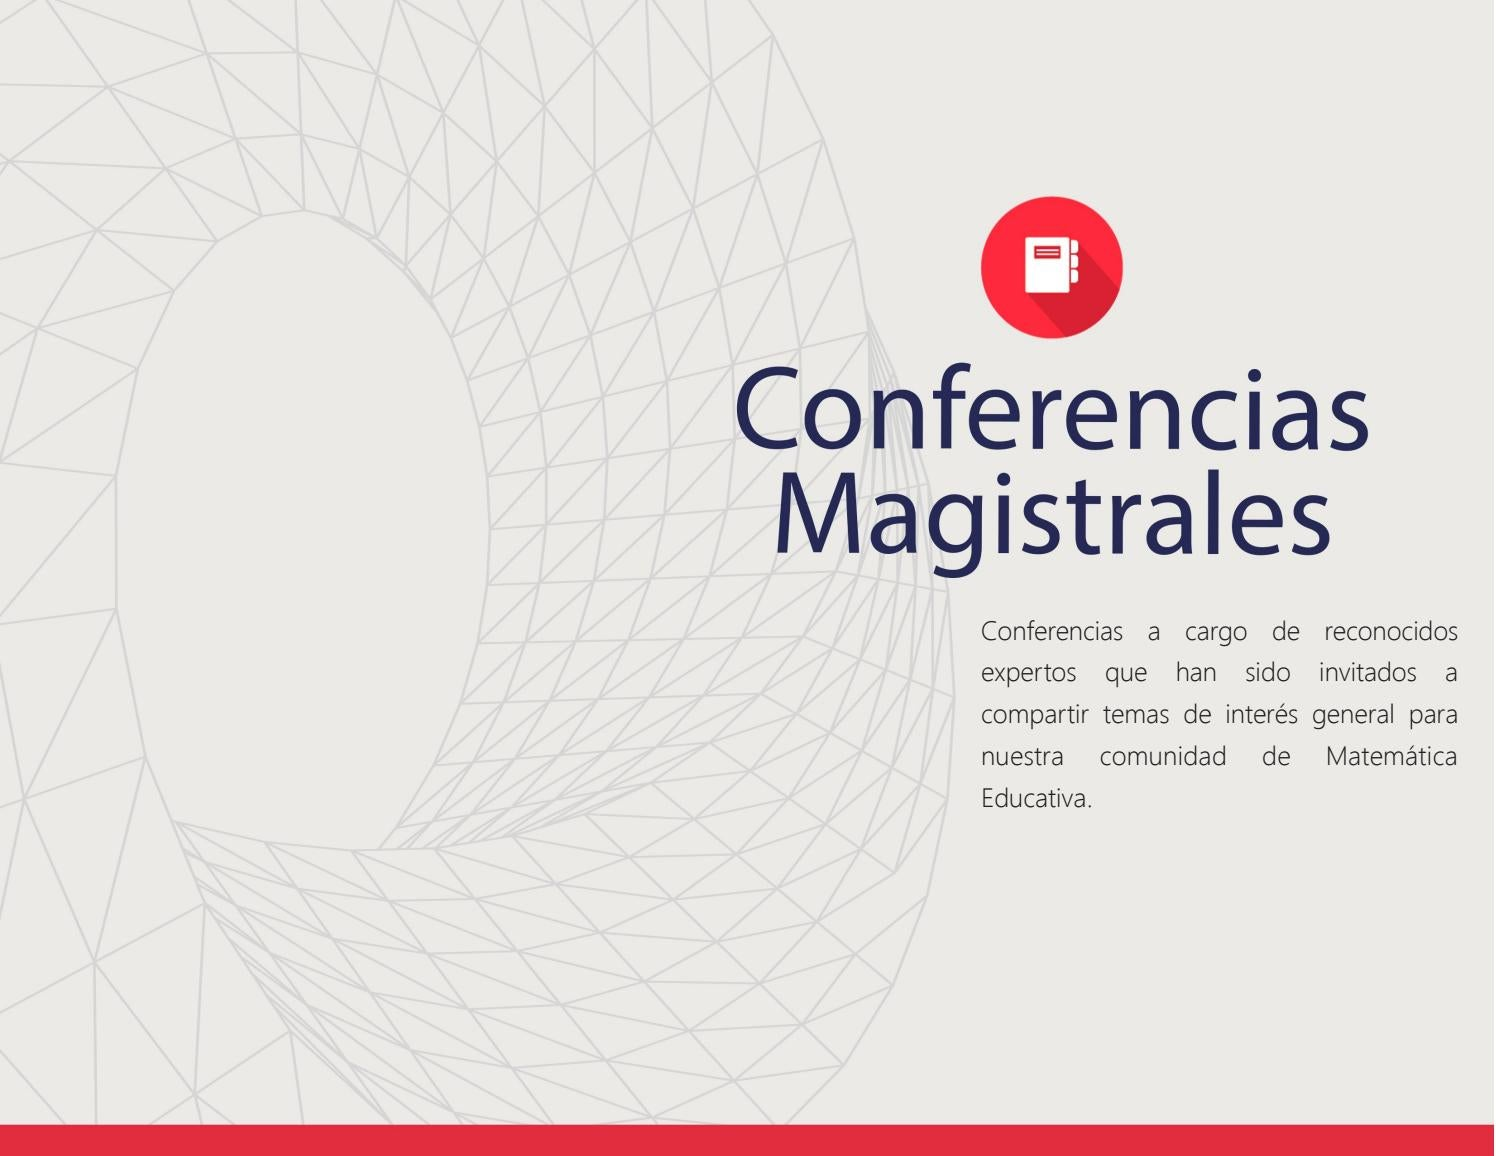 Conferencias magistrales RELME 30 by Tecnológico de Monterrey - issuu